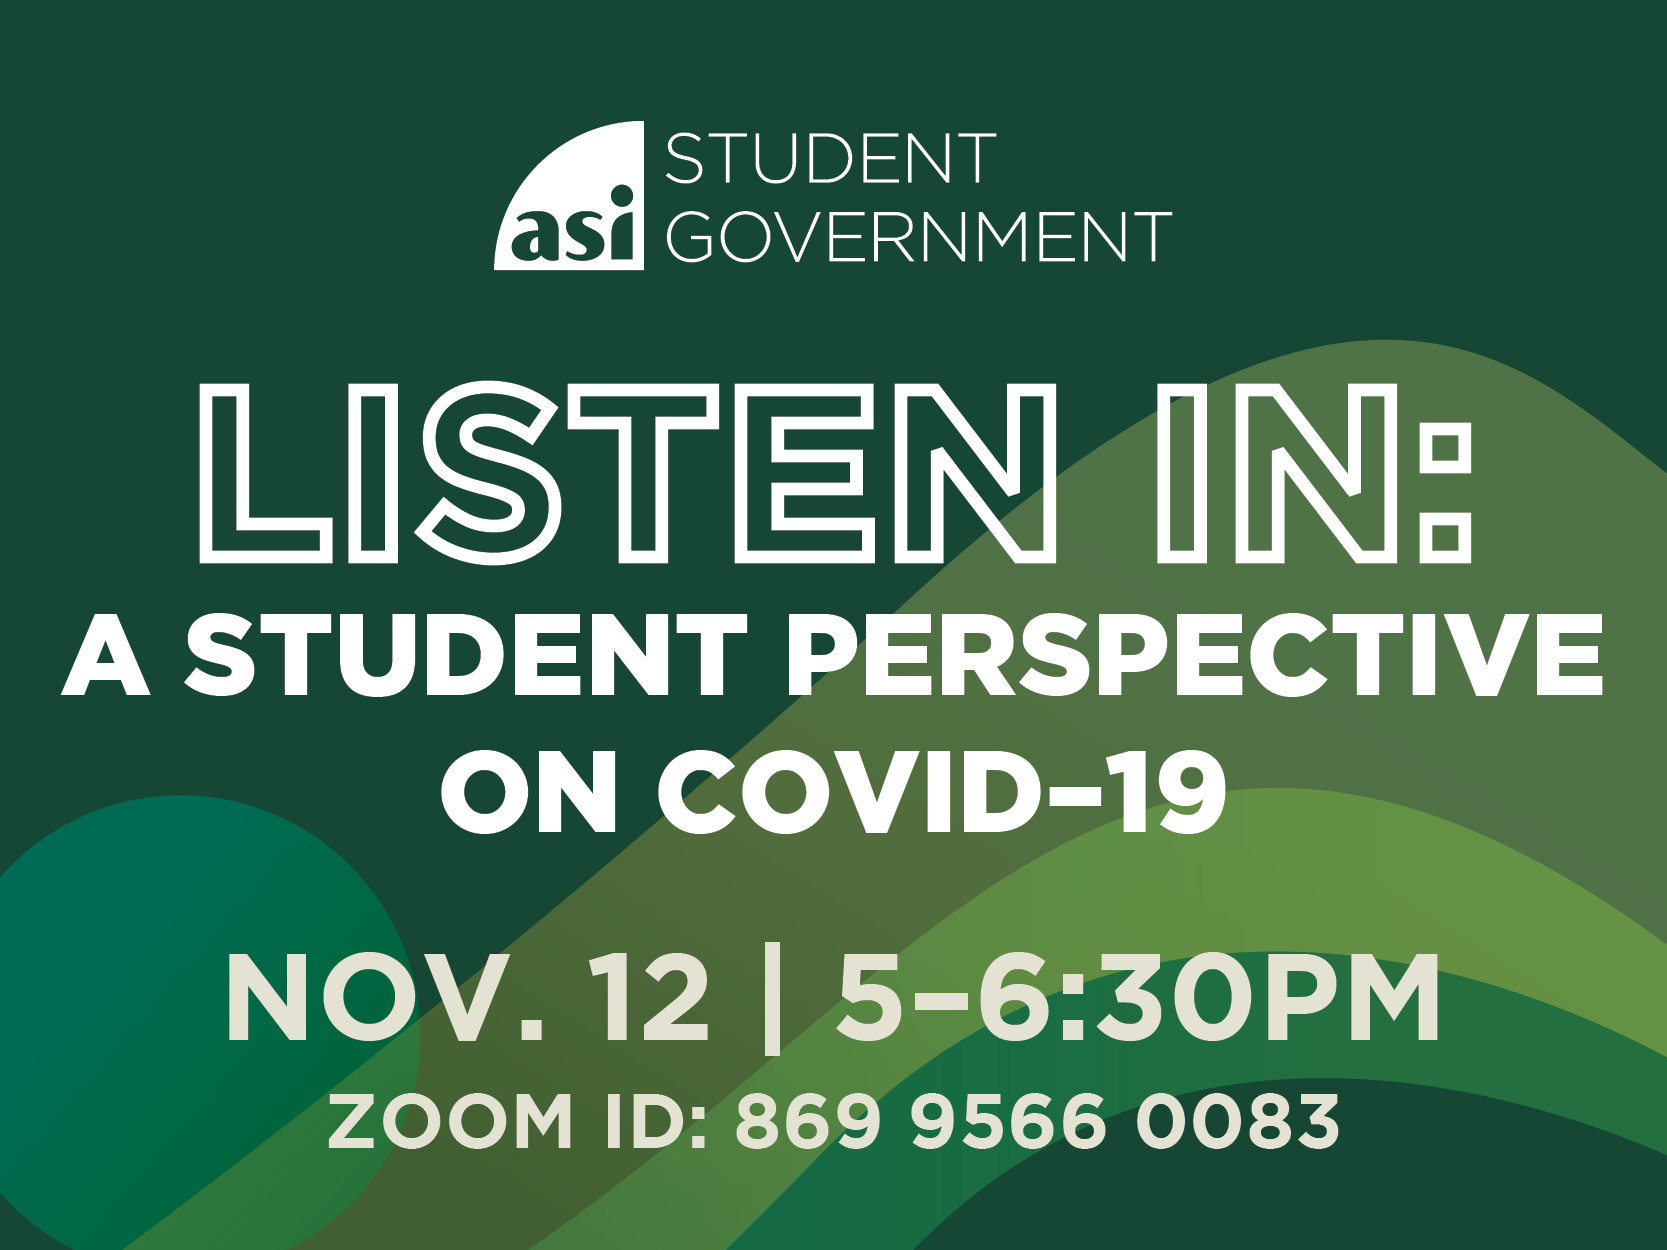 ASI Student Government Listen in A student Perspective on COVID-19